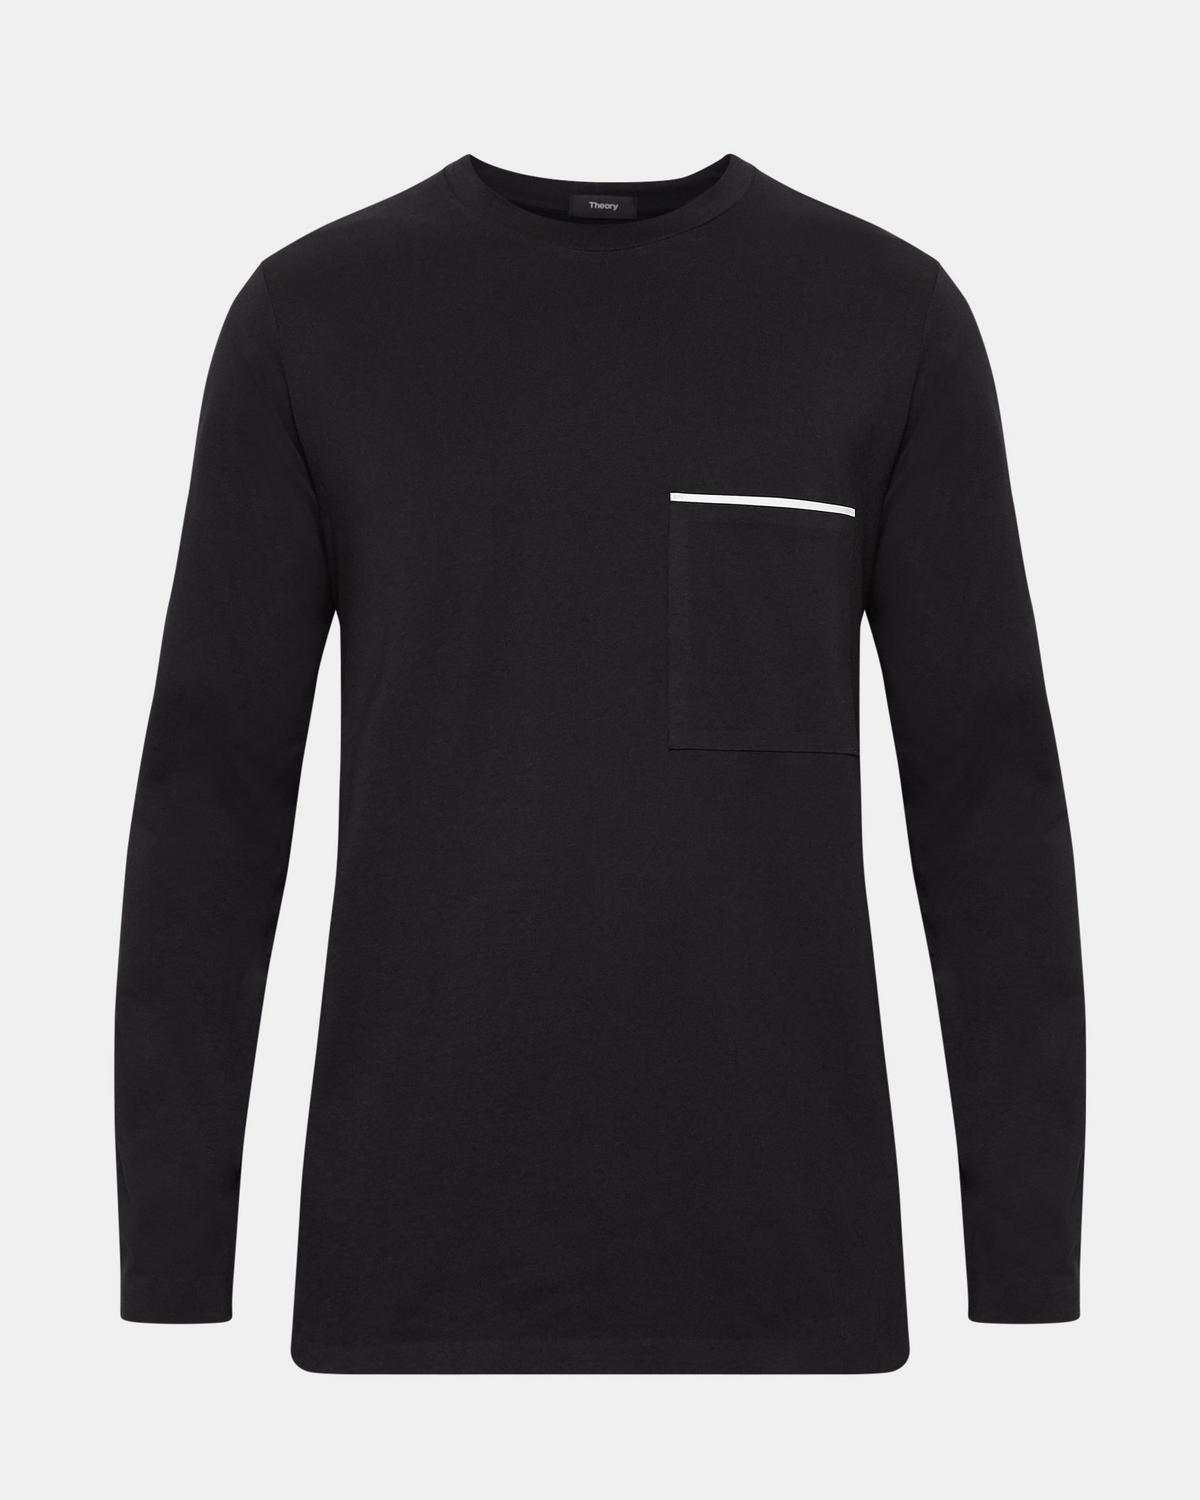 e8d1be23f23 Mr Porter x Theory Neo Pocket Tee 1 - click to view larger image ...